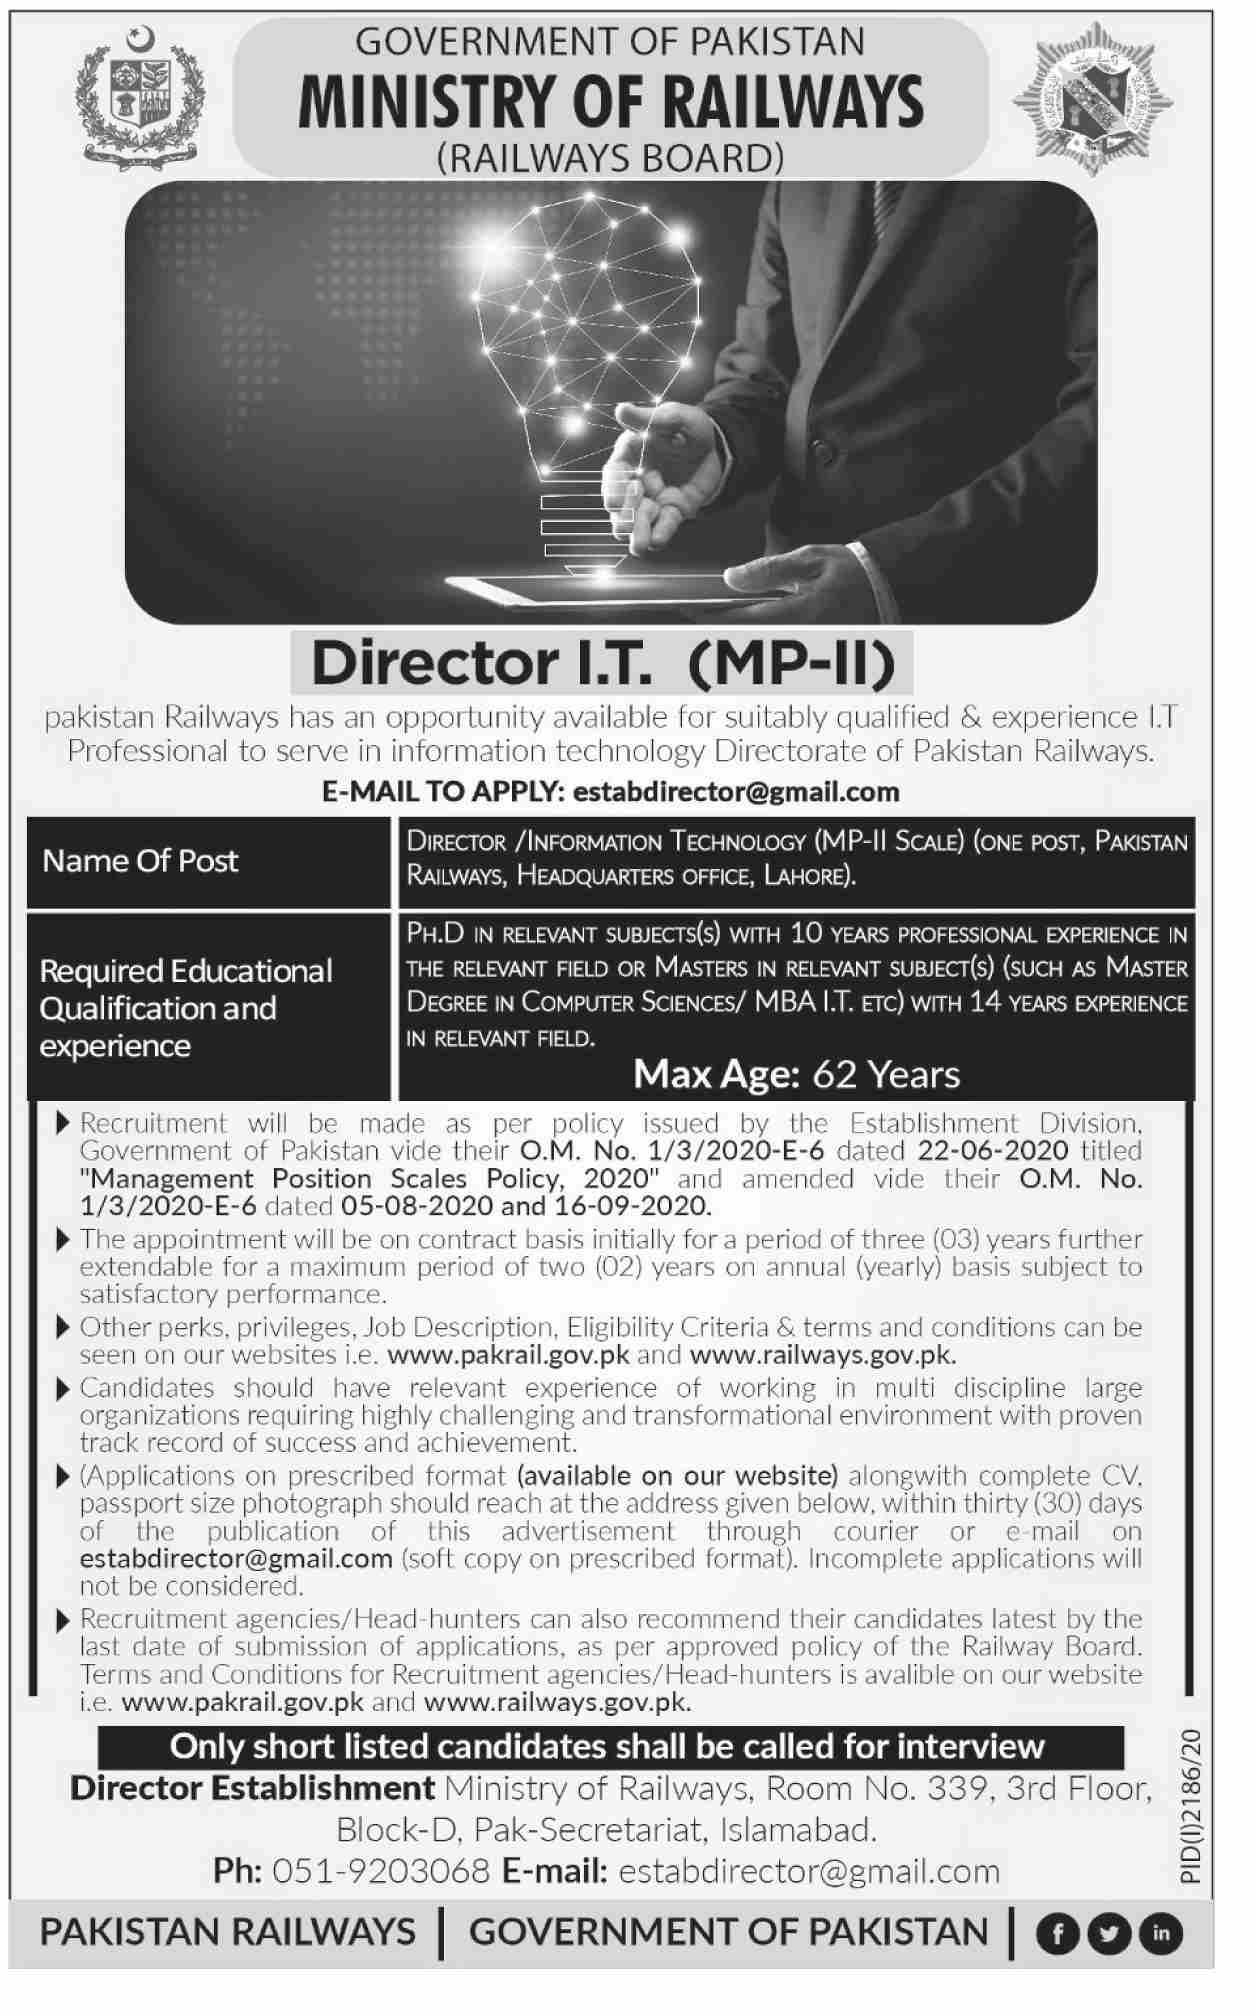 Ministry of Railway November Jobs in Pakistan - Apply Online - estabdirector@gmail.com - www.pakrail.gov.pk - www.railways.gov.pk